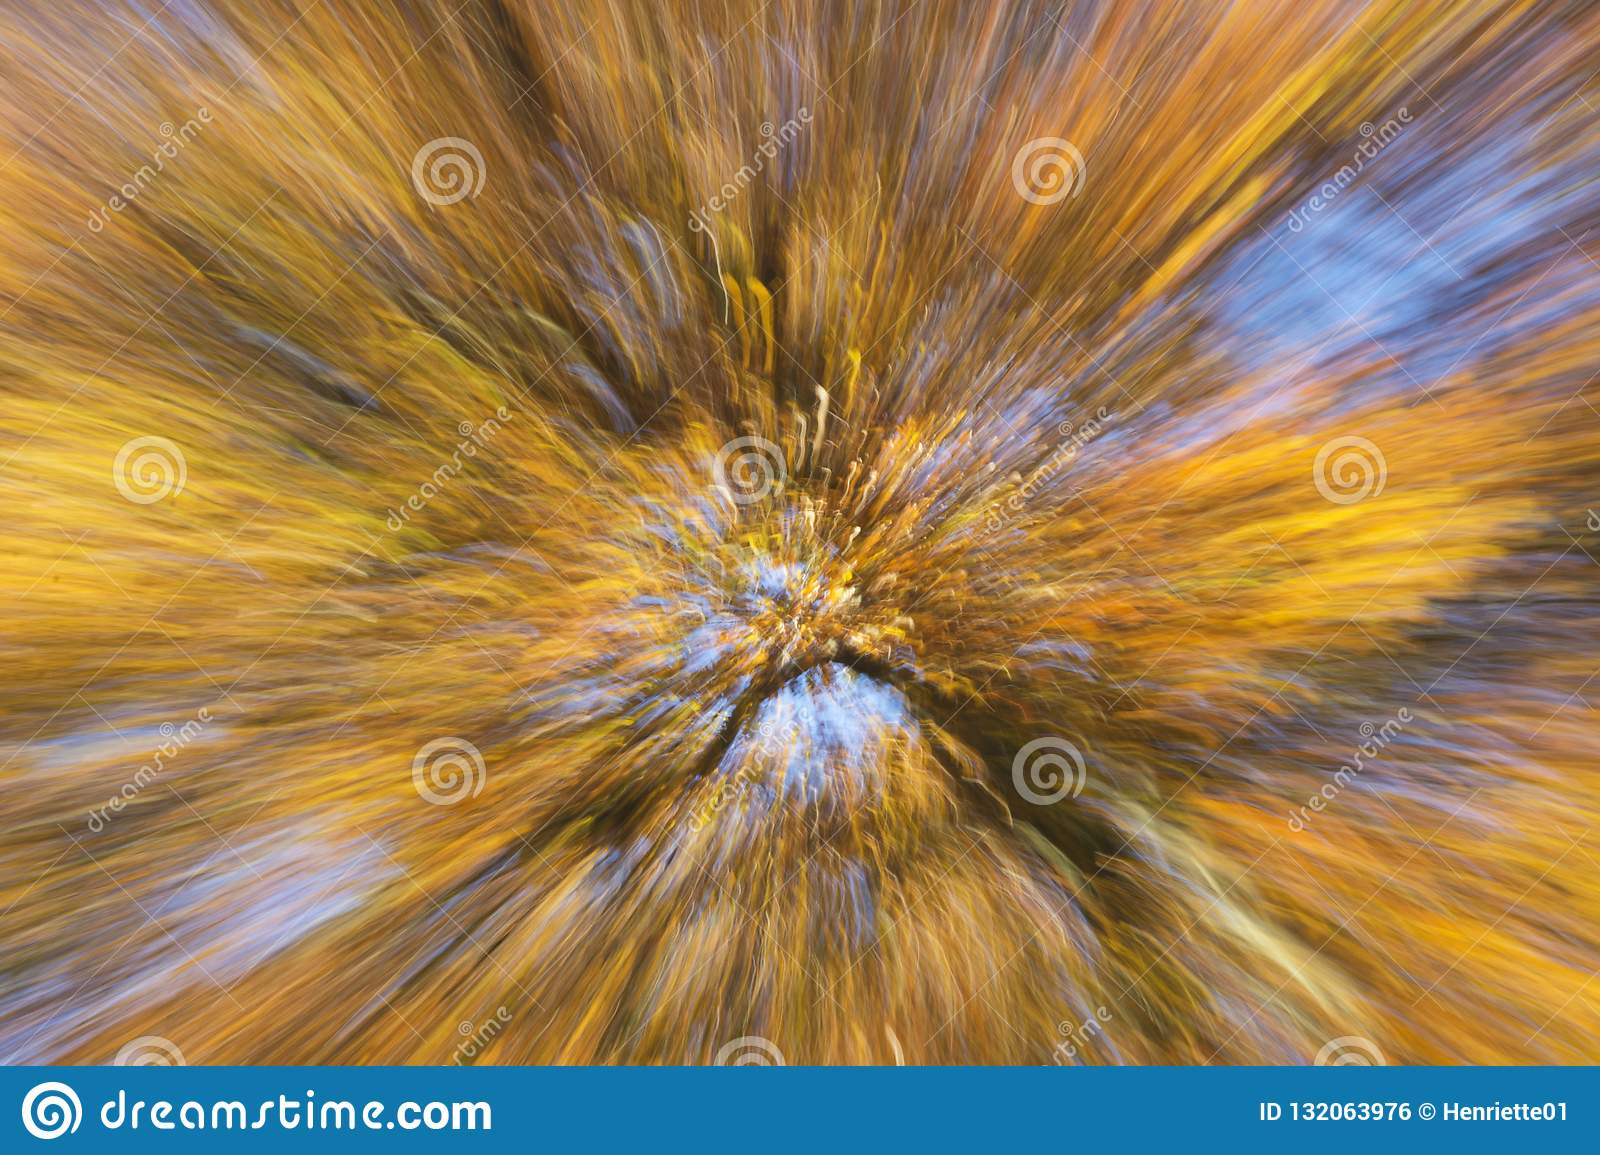 Artistic view on a beautiful tree with branches full of exploding orange and yellow autumn leaves